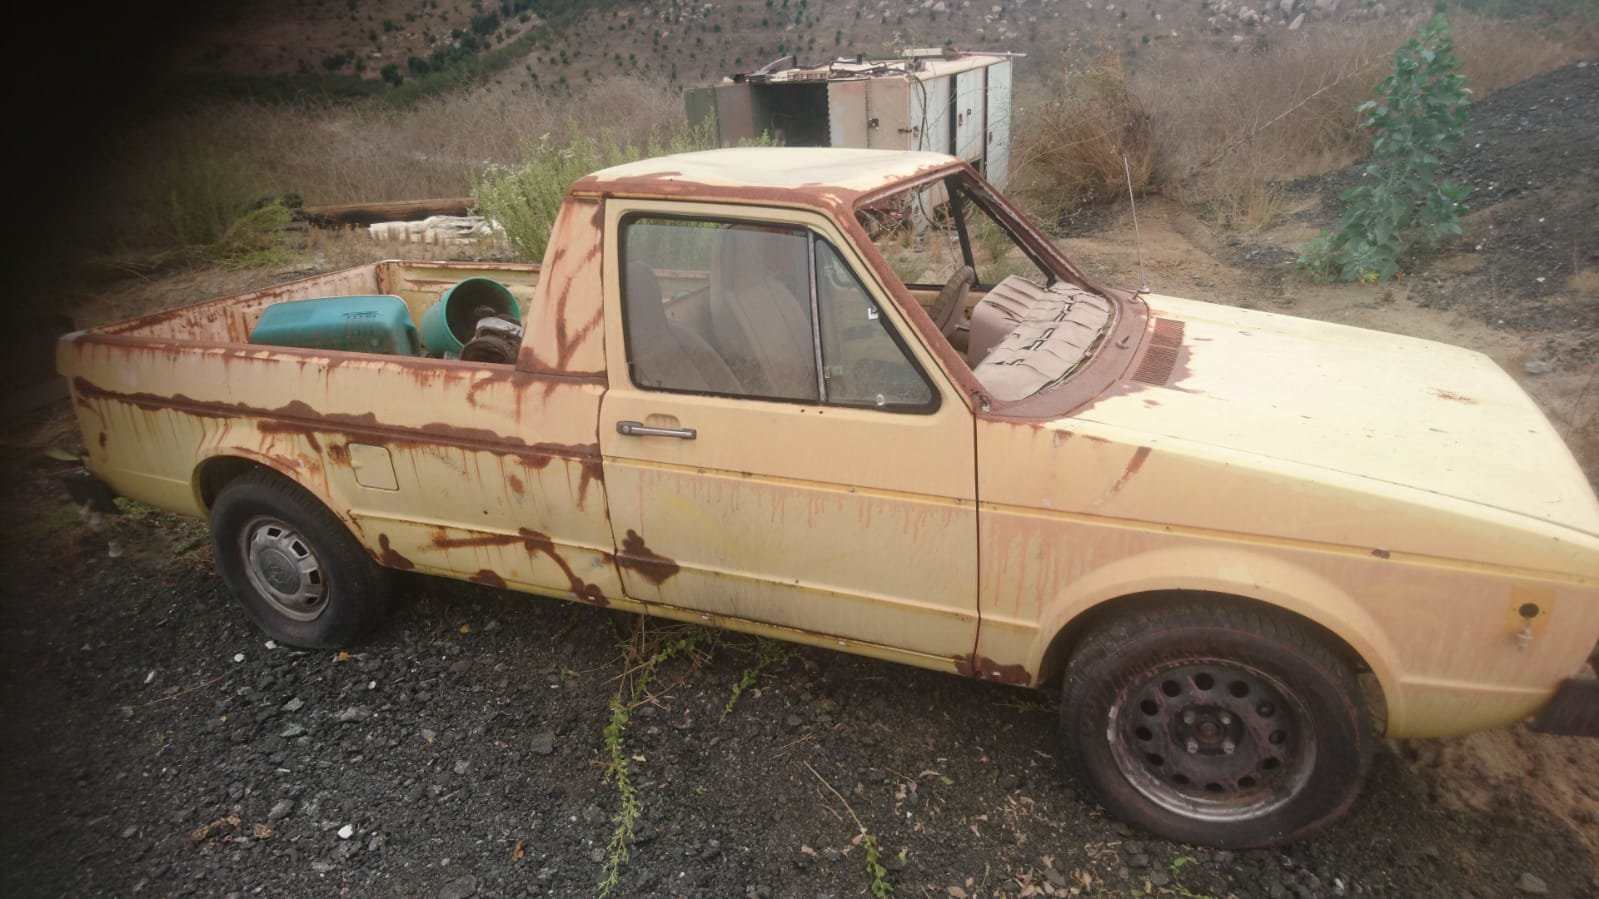 1980 Vw caddy  For Sale (picture 3 of 5)